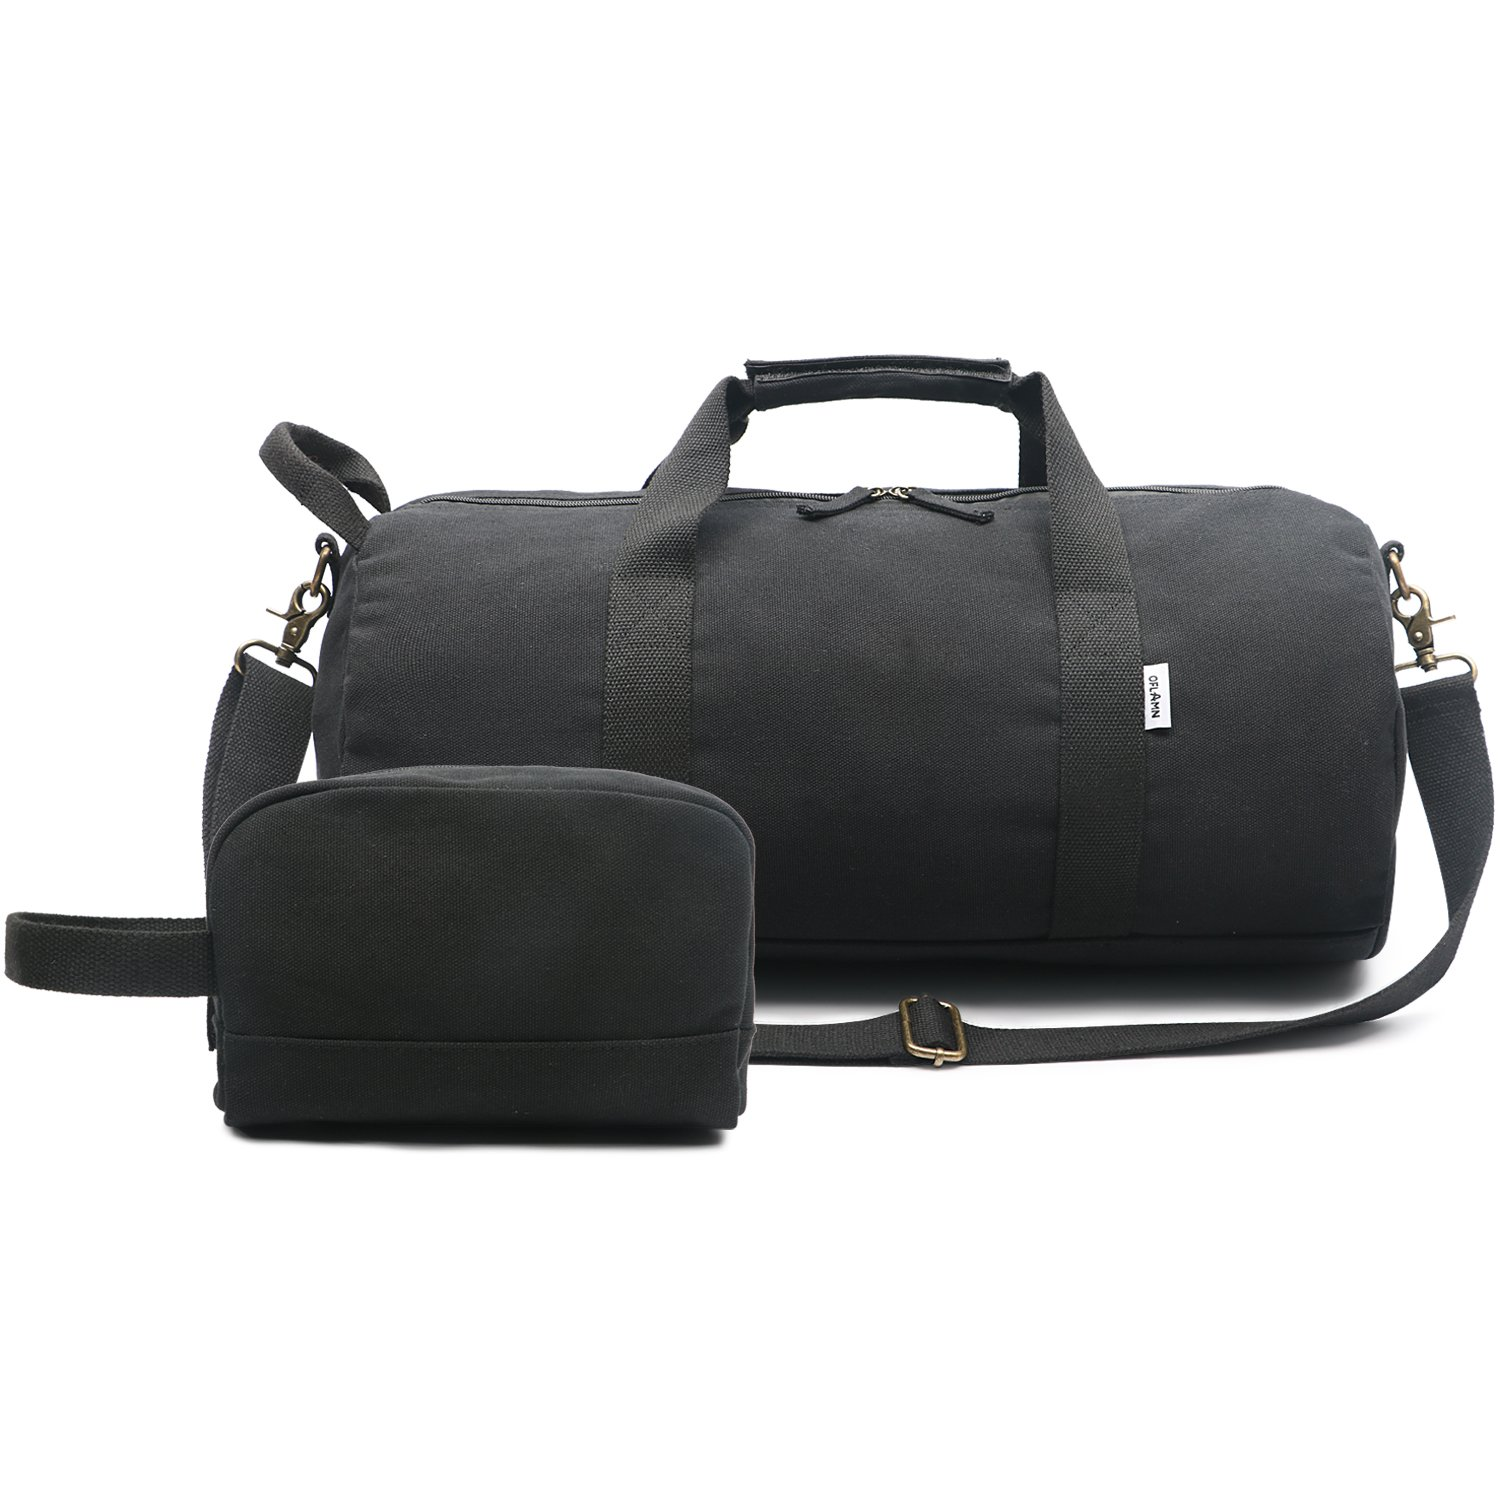 High Quality Pu Leather Sports Bags Gym Bags Man Women Classic Sports Handbag Fitness Travel Bags Workout Bag Shoes Storage Selling Well All Over The World Emergency Kits